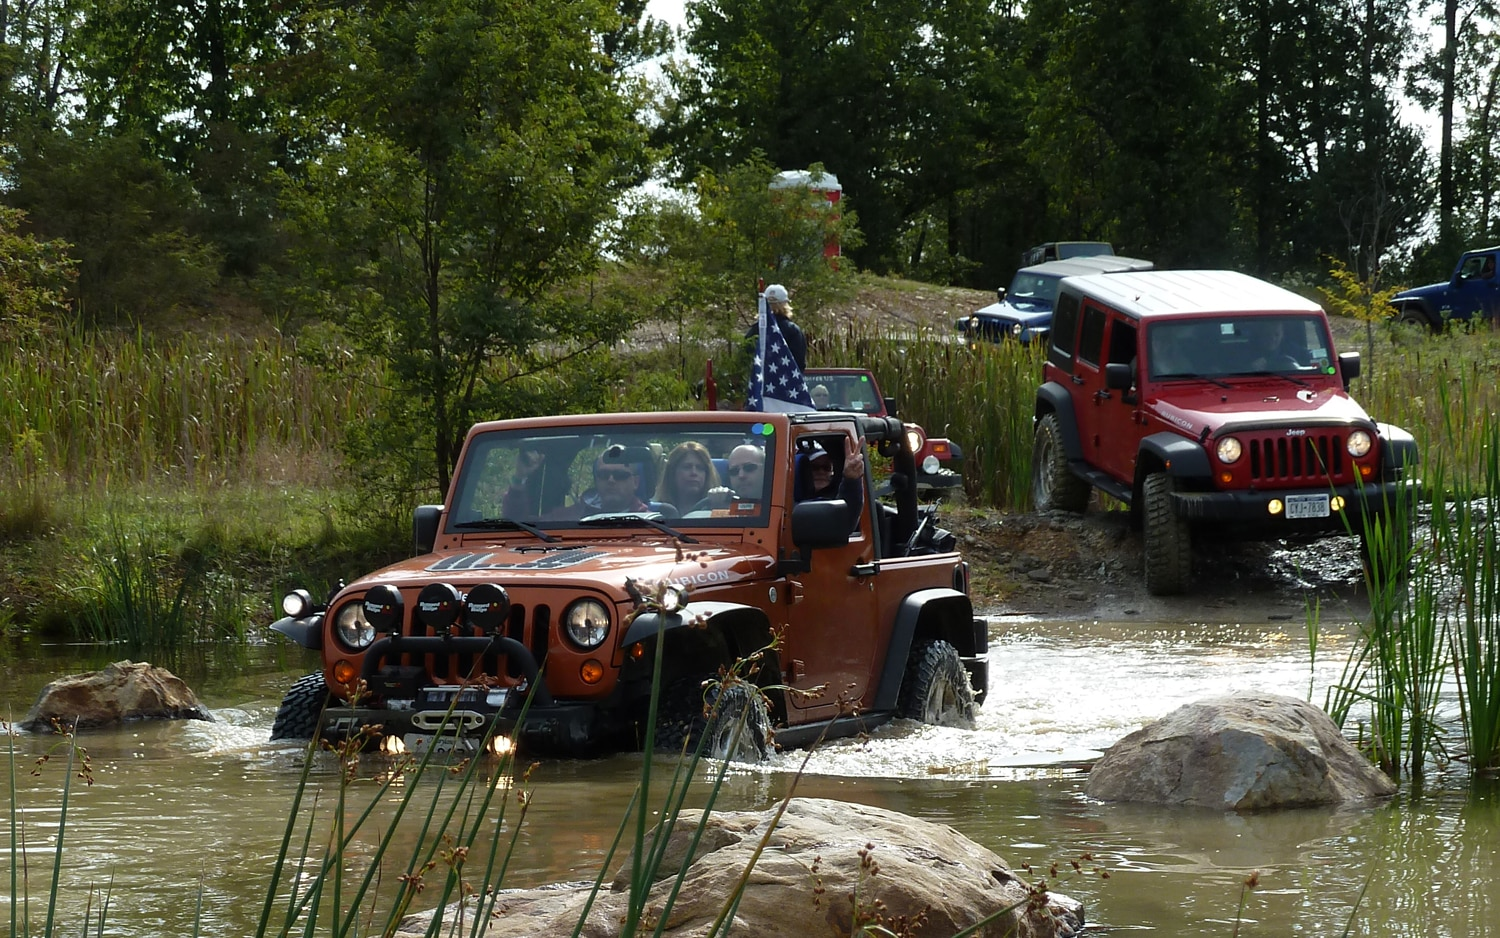 2011 Jeep Jamboree Wadding In Water